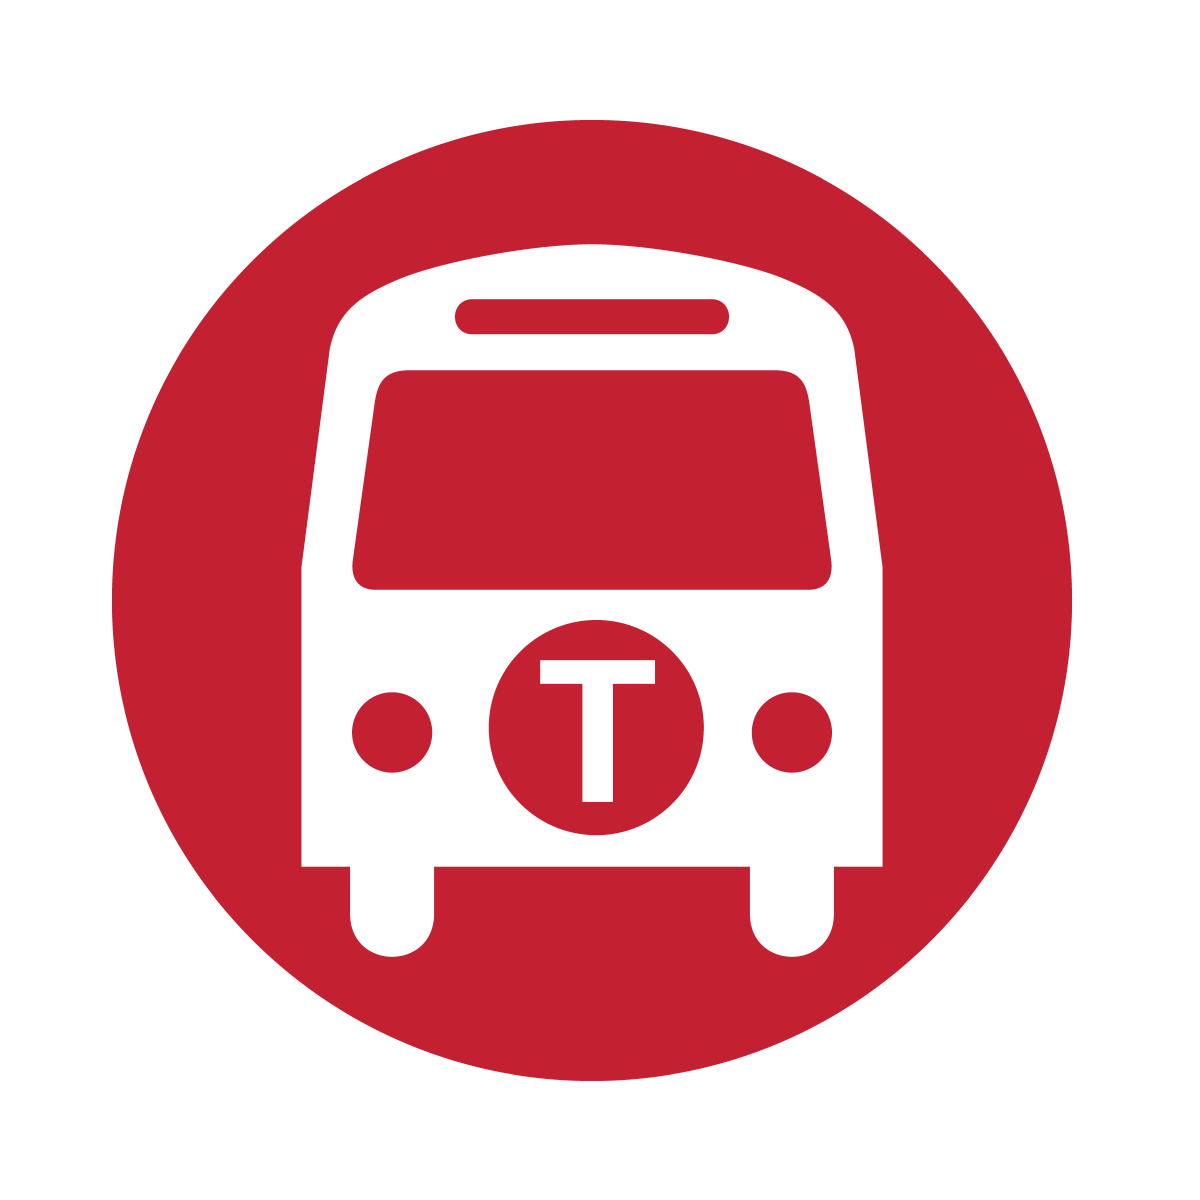 Symbol for the T Third Bus Substitution